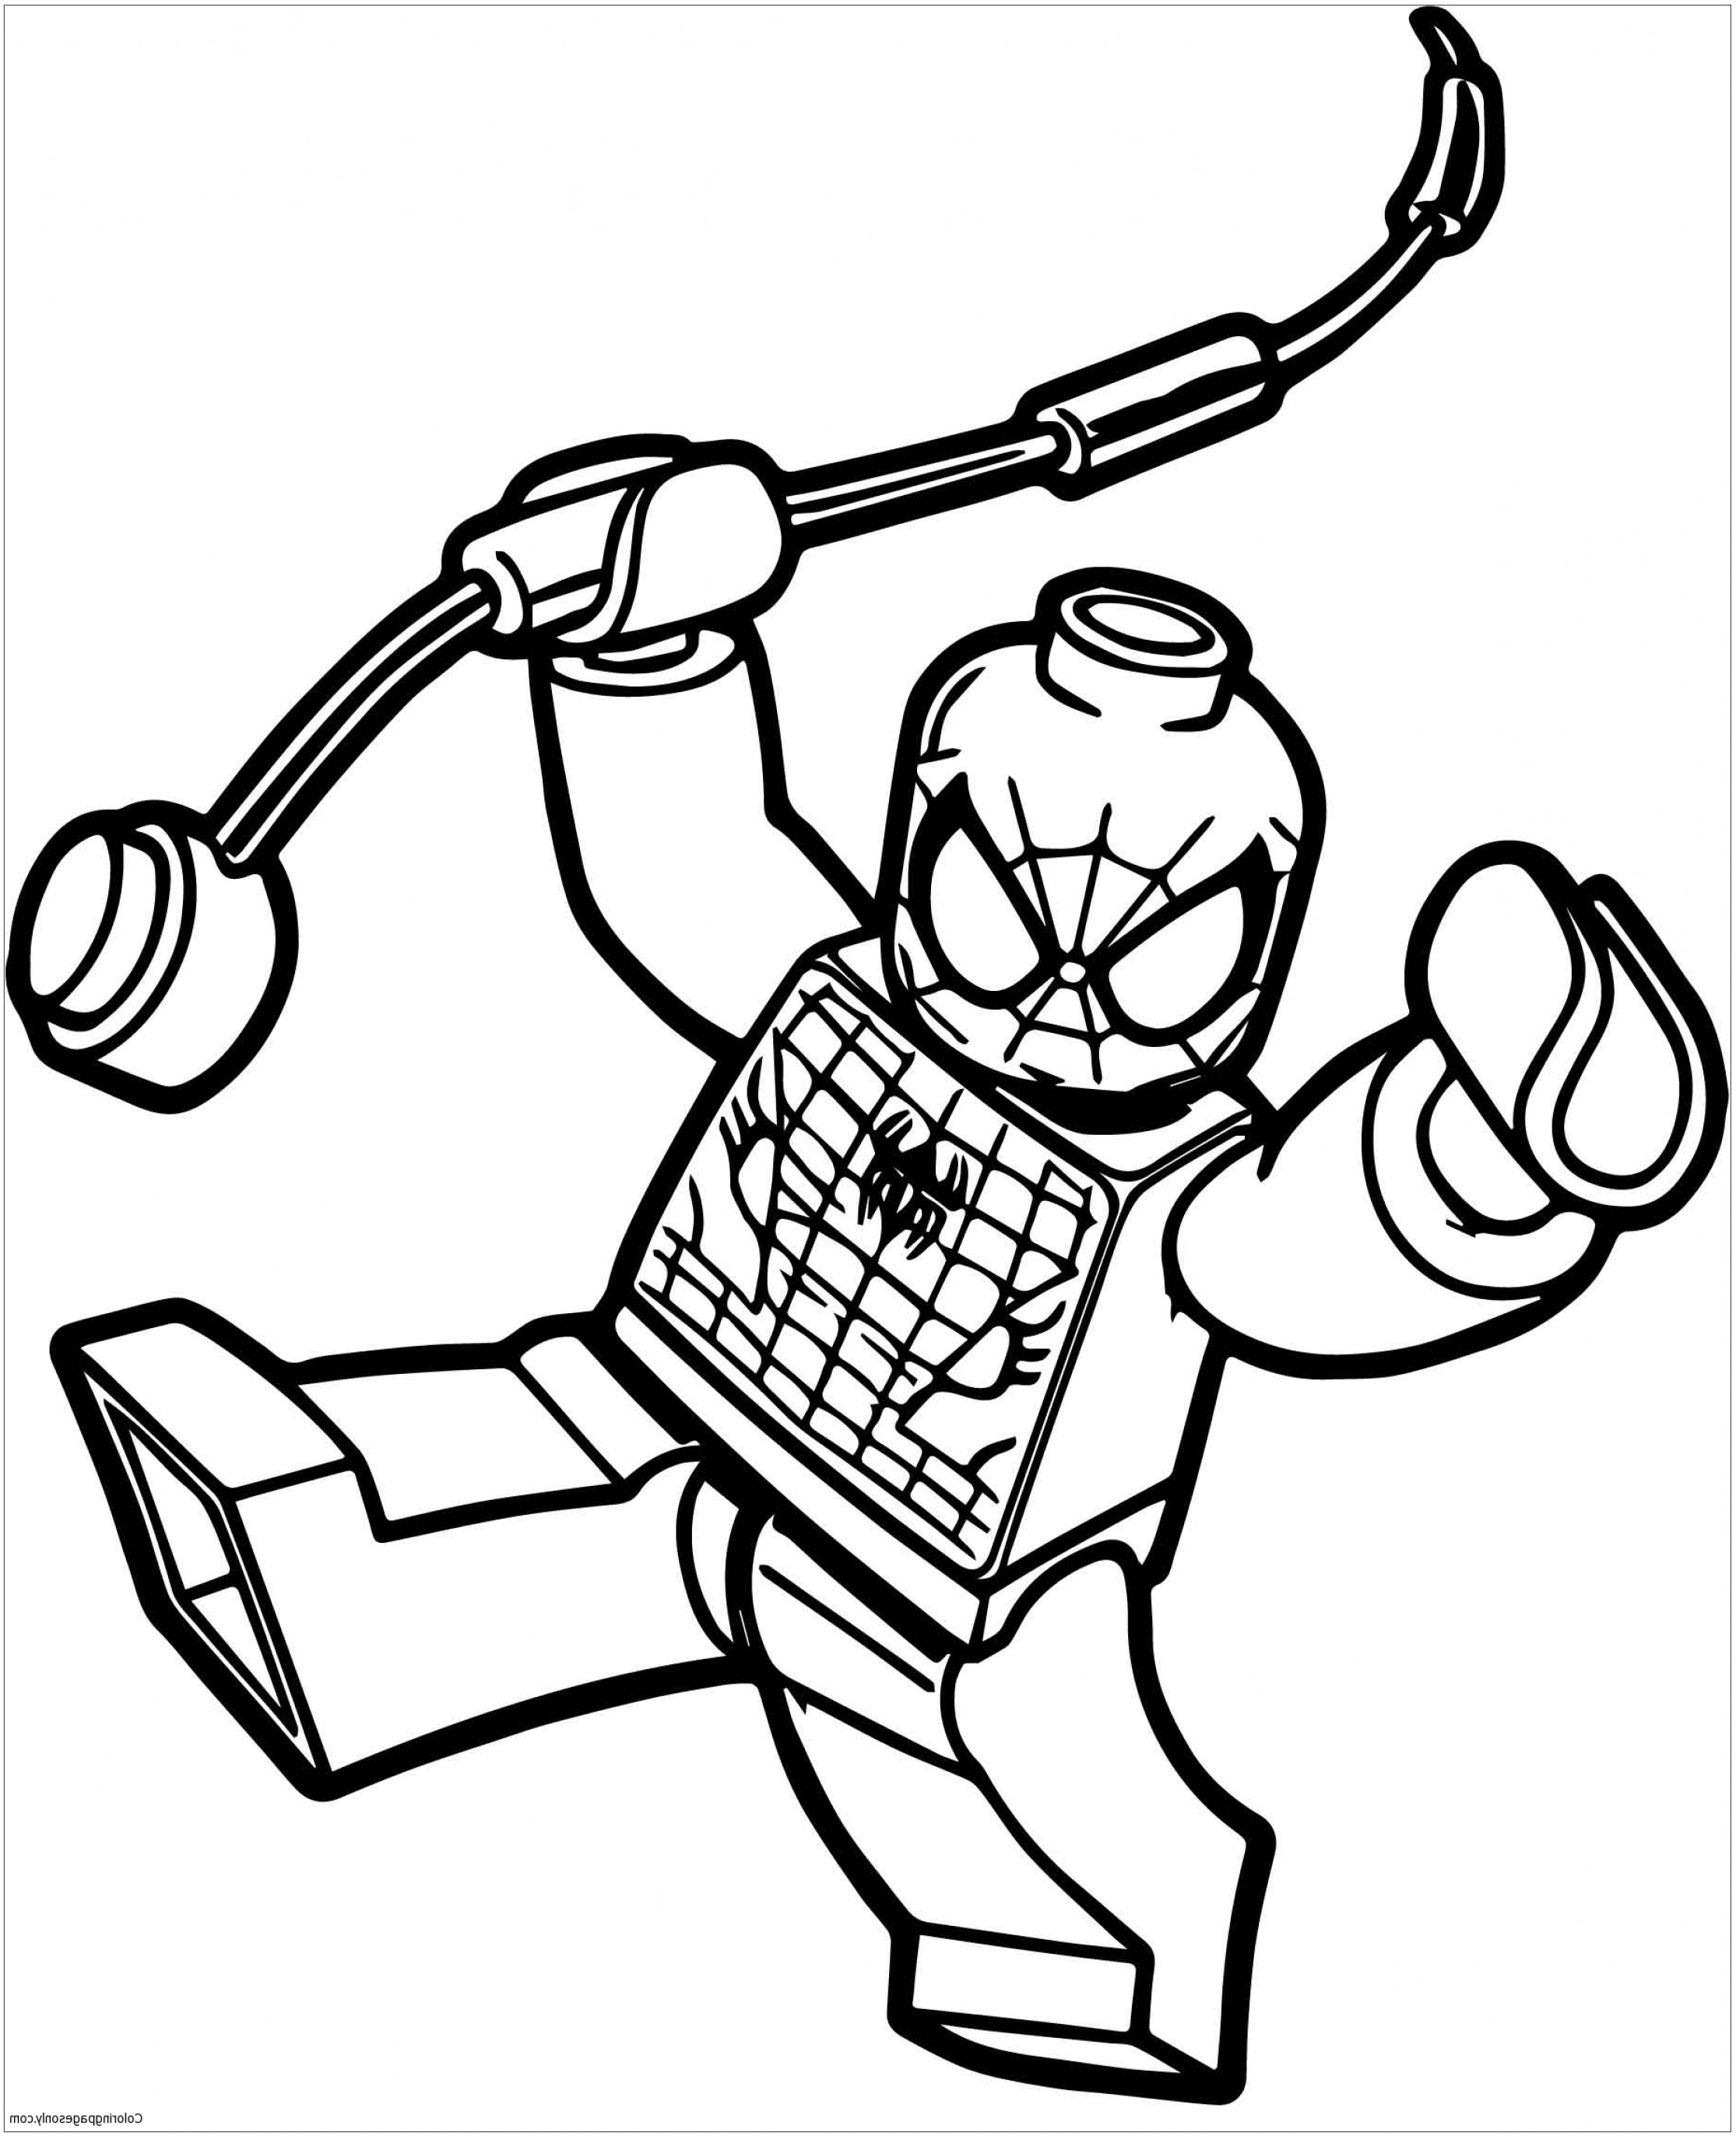 2230x2744 Box Spiderman Lego Spider Man Coloring Page Free Coloring Pages